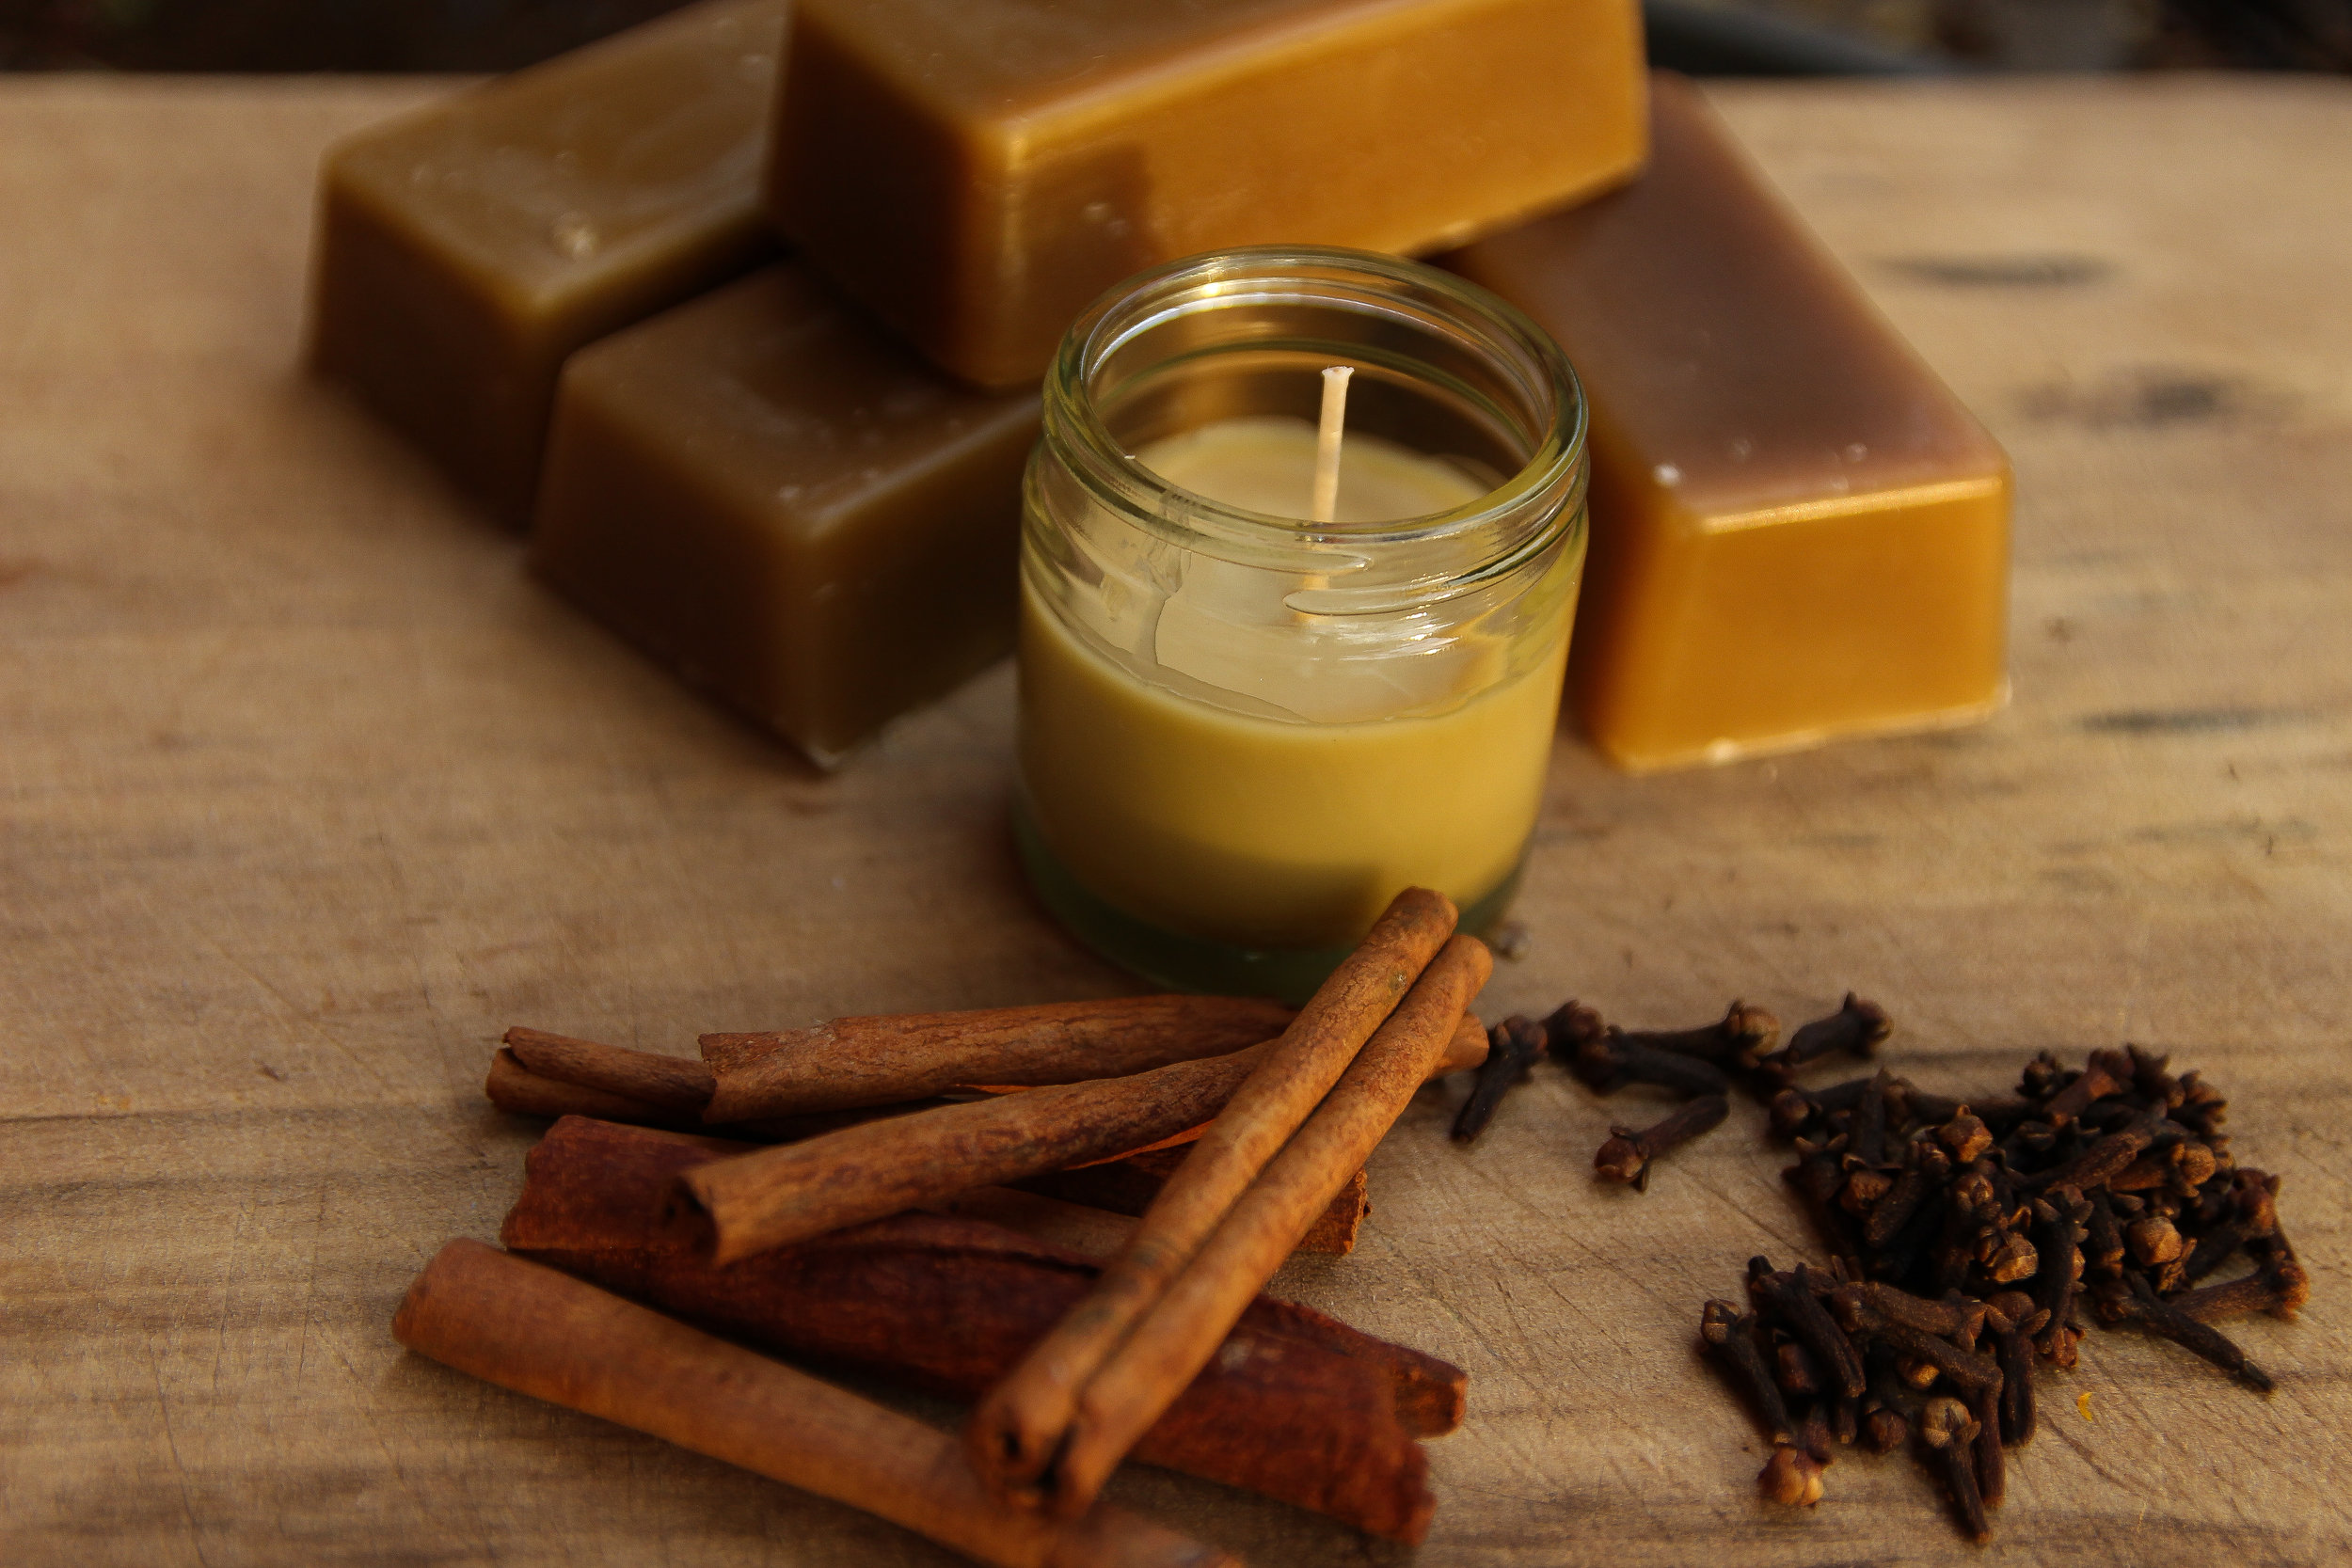 Melbourne, Australia, 2018- Organic beeswax candles with clove and cinamon bark essential oils